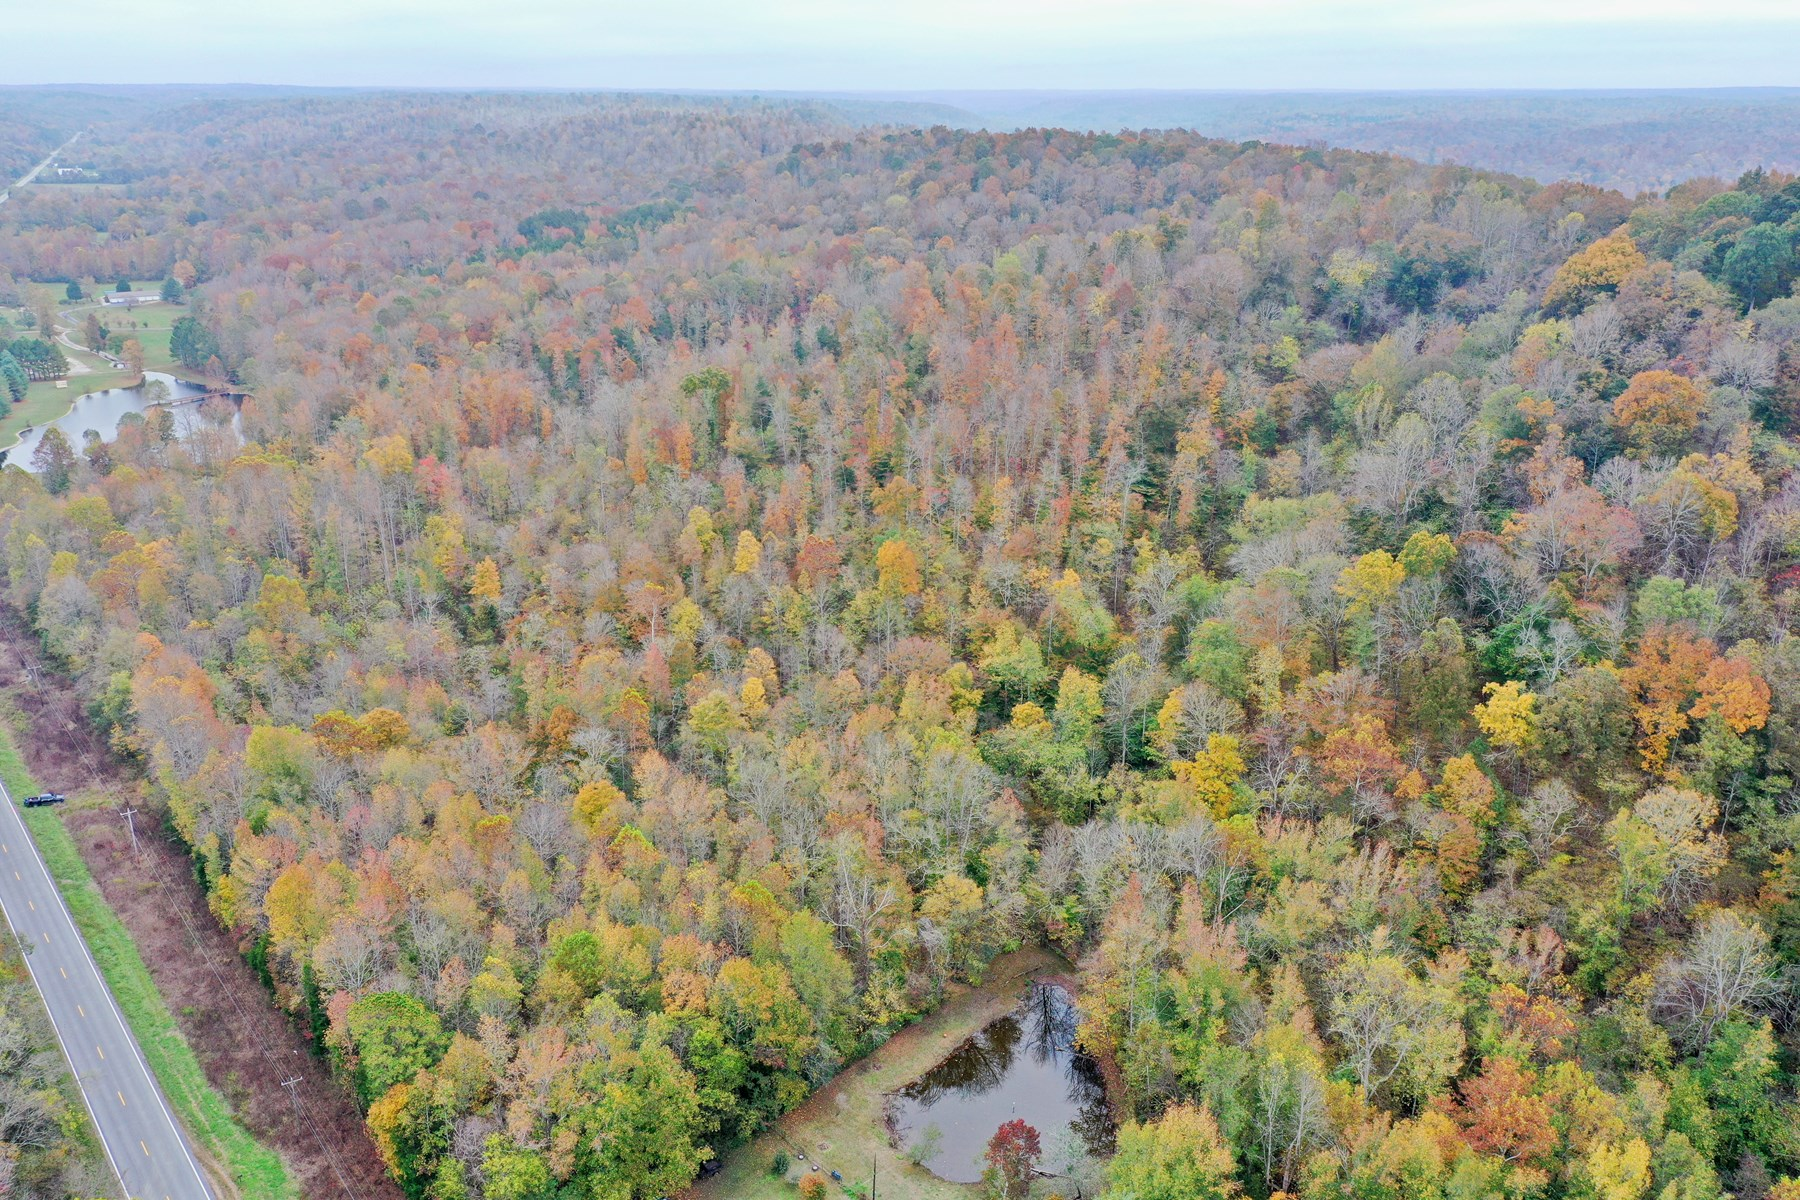 Land for Sale in Hickman County TN with Creek and Spring